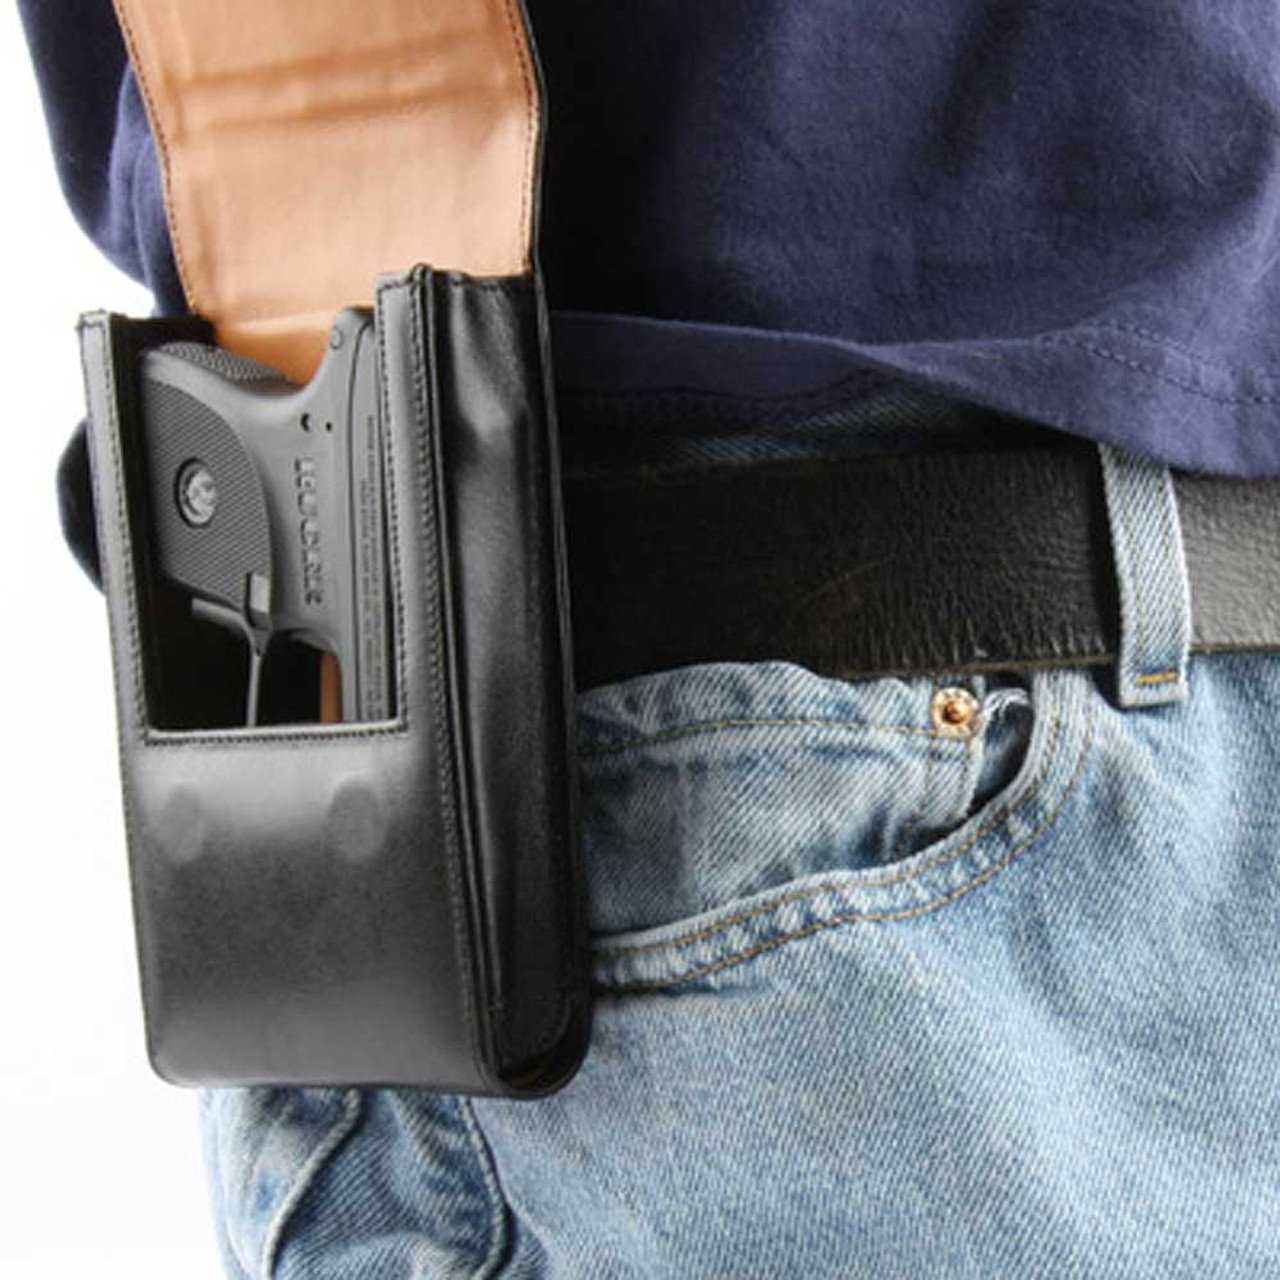 Sig Sauer P320 Sub Compact Concealed Carry Holster (Belt Loop)